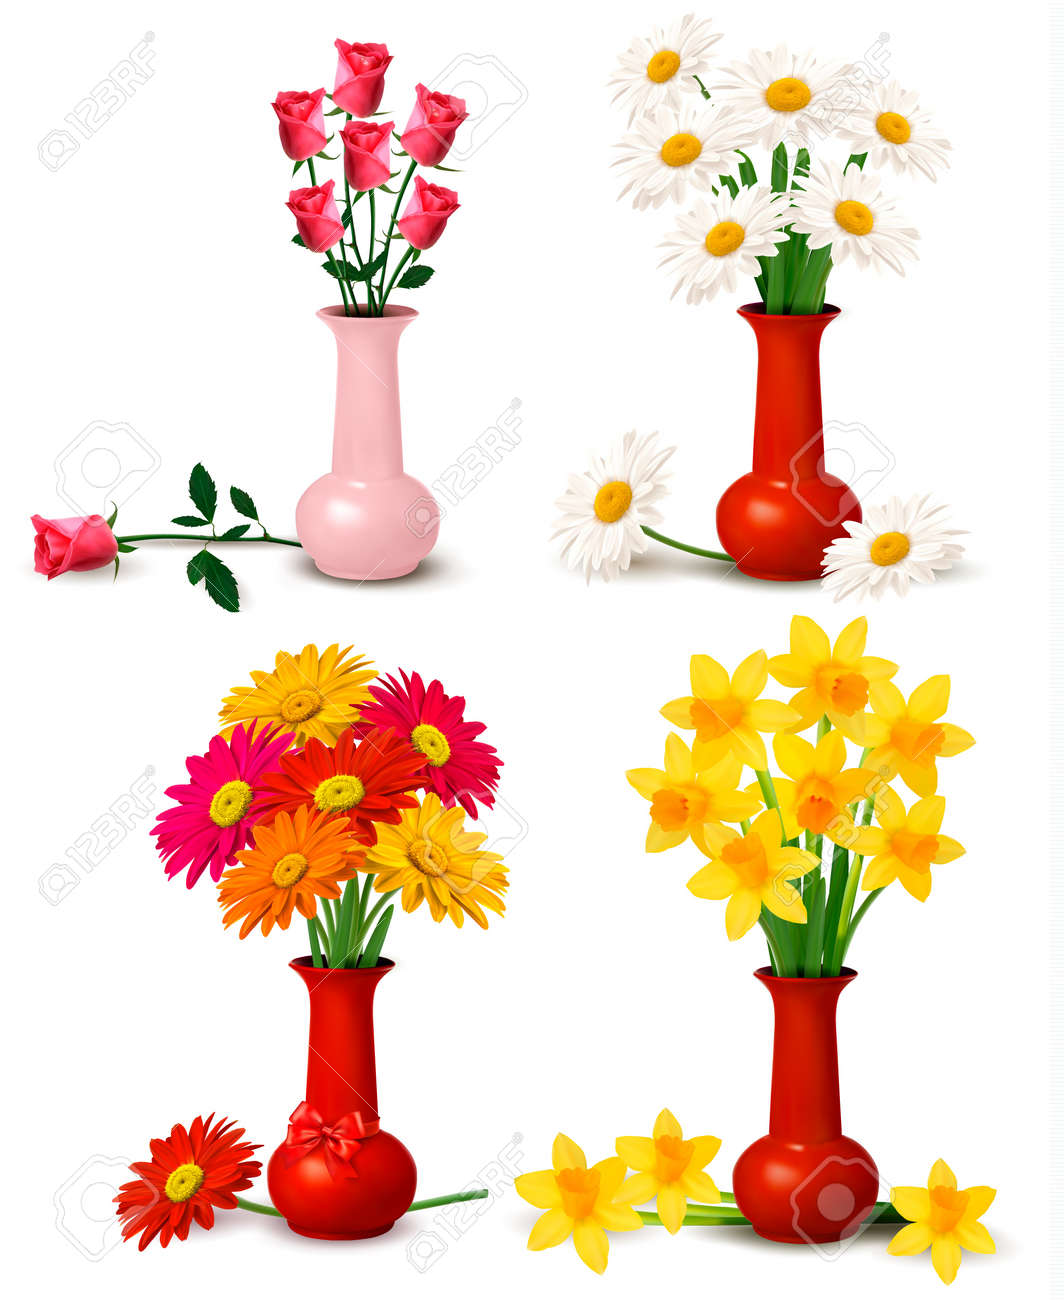 Spring and summer colorful flowers in vases royalty free cliparts spring and summer colorful flowers in vases stock vector 14021490 reviewsmspy